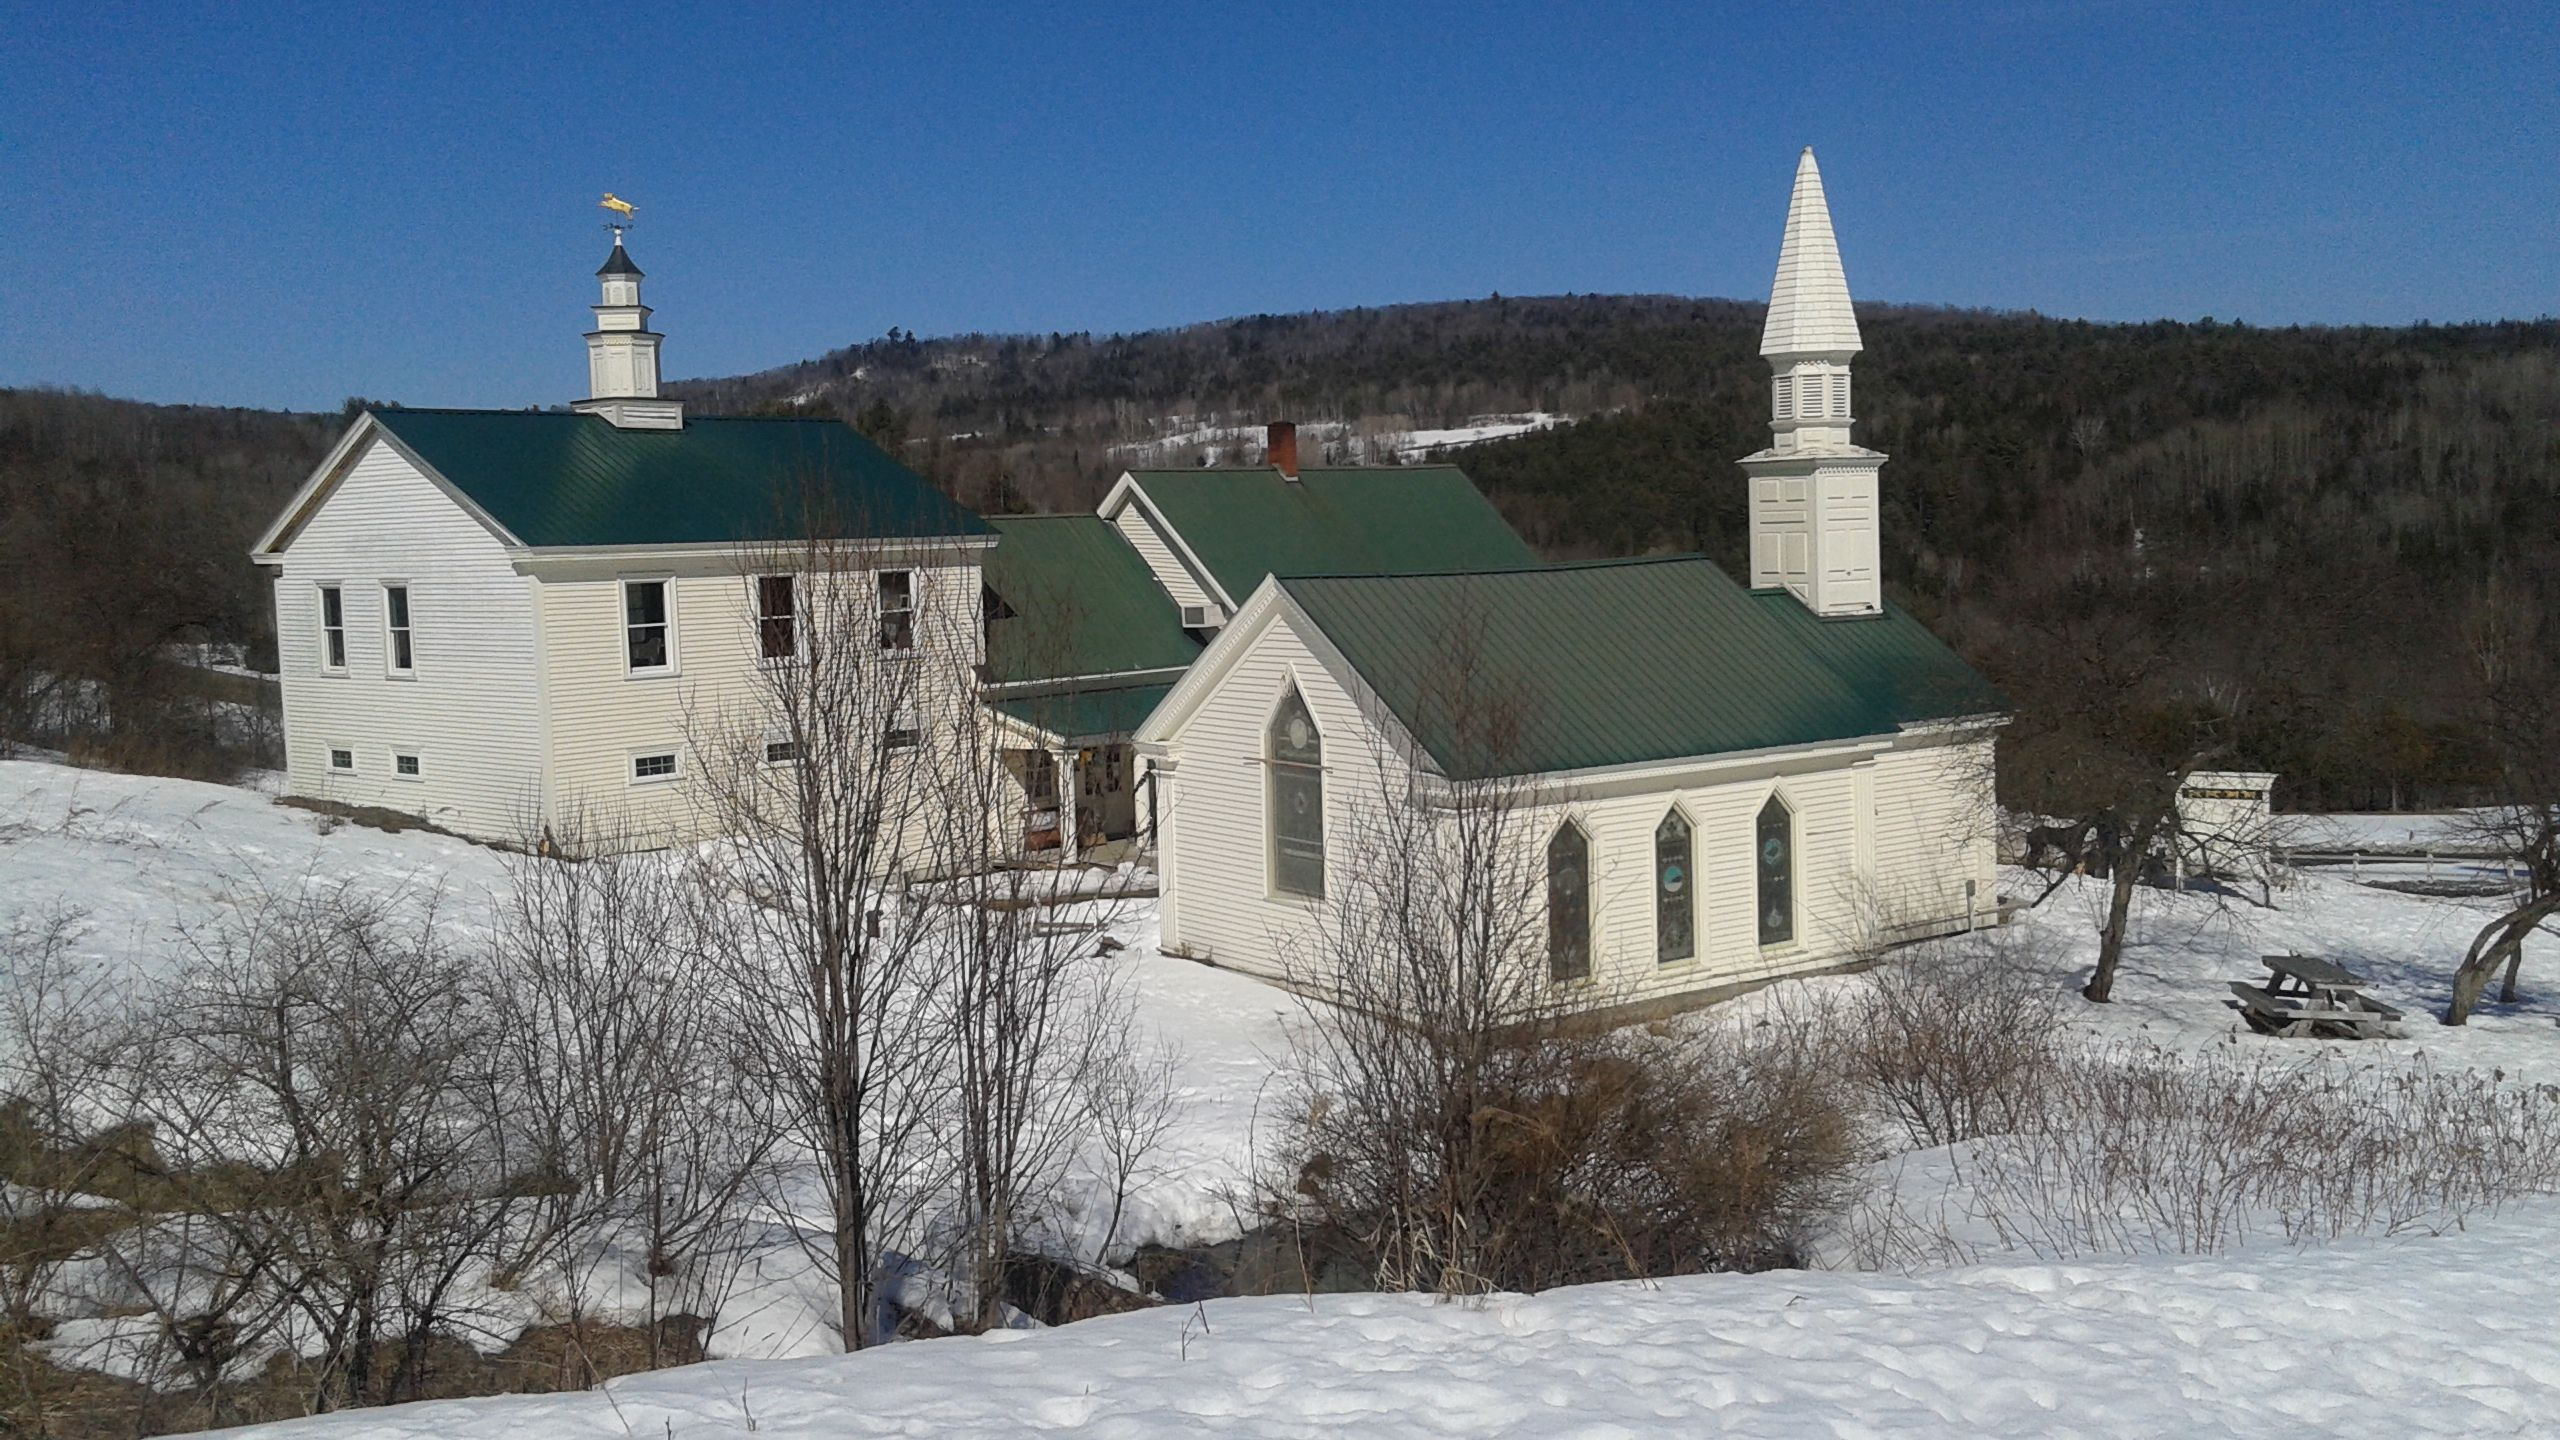 Visited The Dog Chapel In Vermont